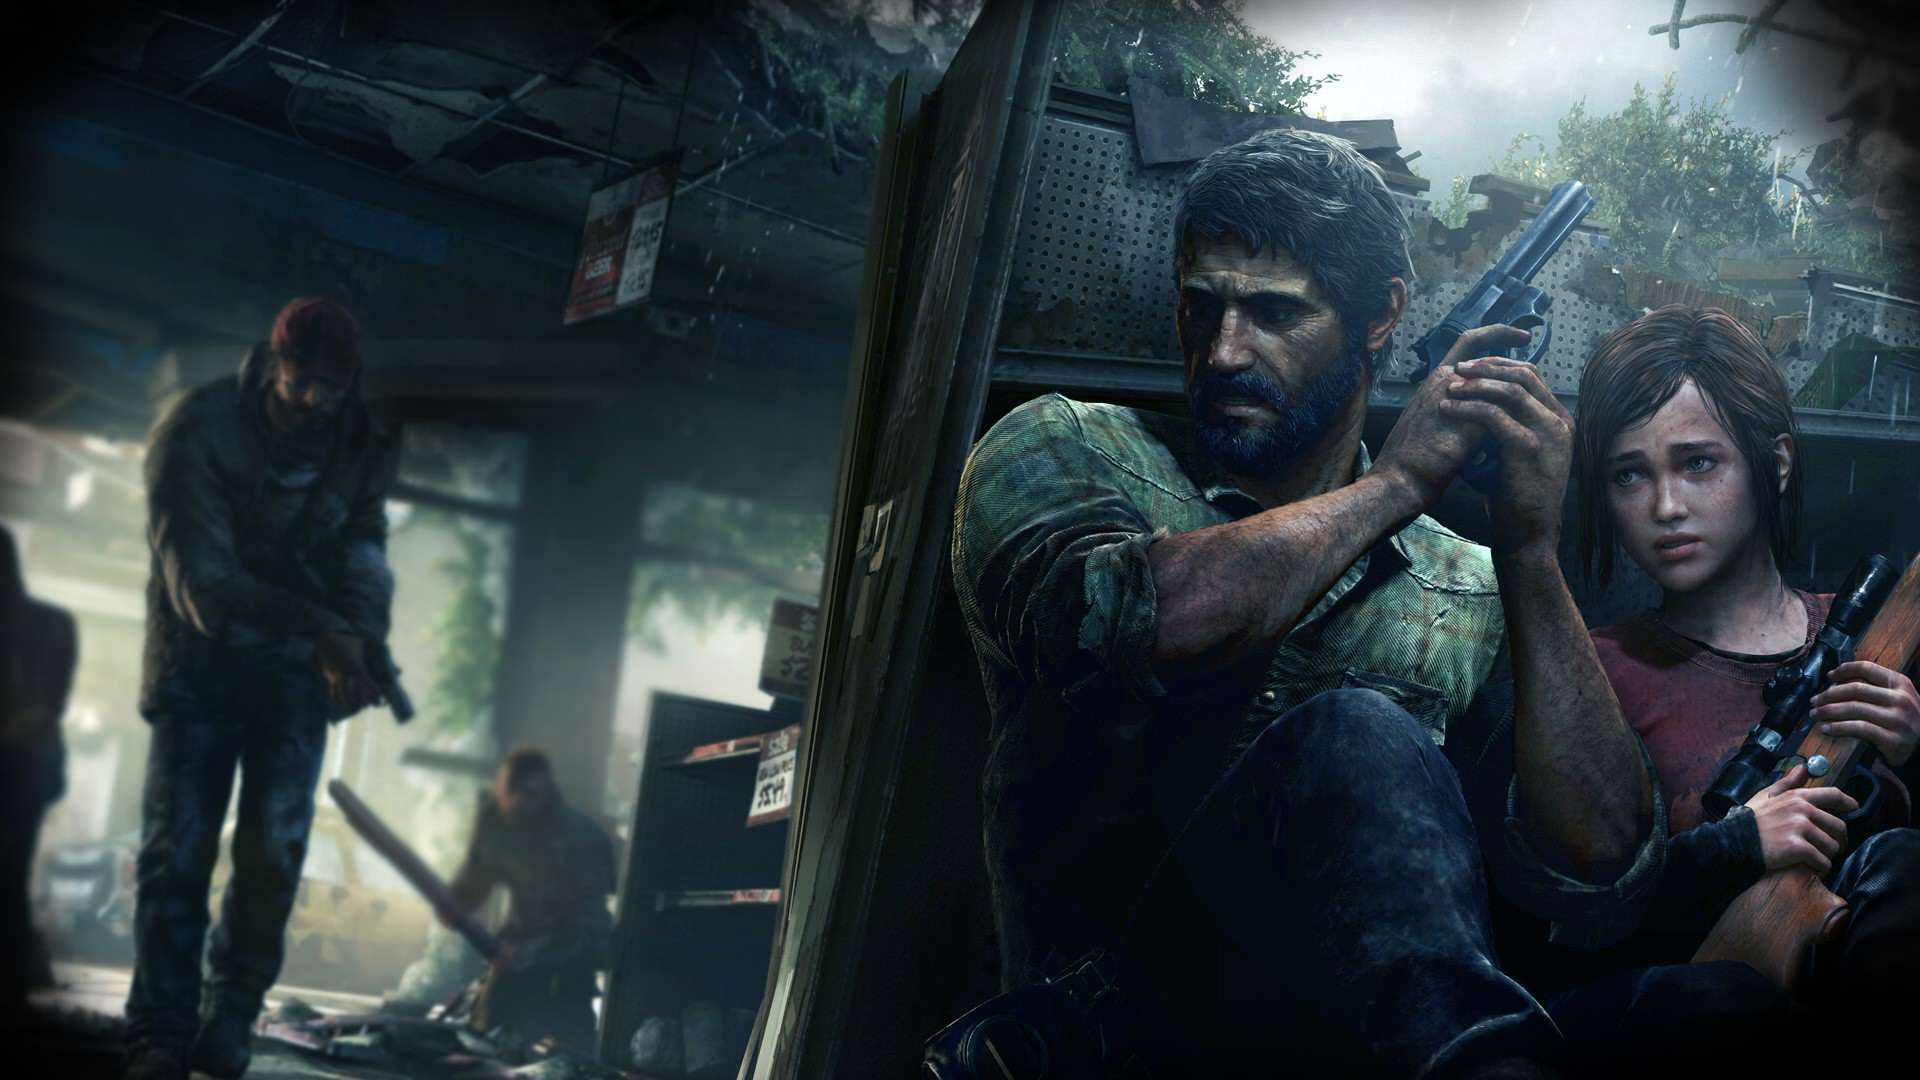 11 Games We Want To See At E3 whsa0lrdy41we0eyhh6m